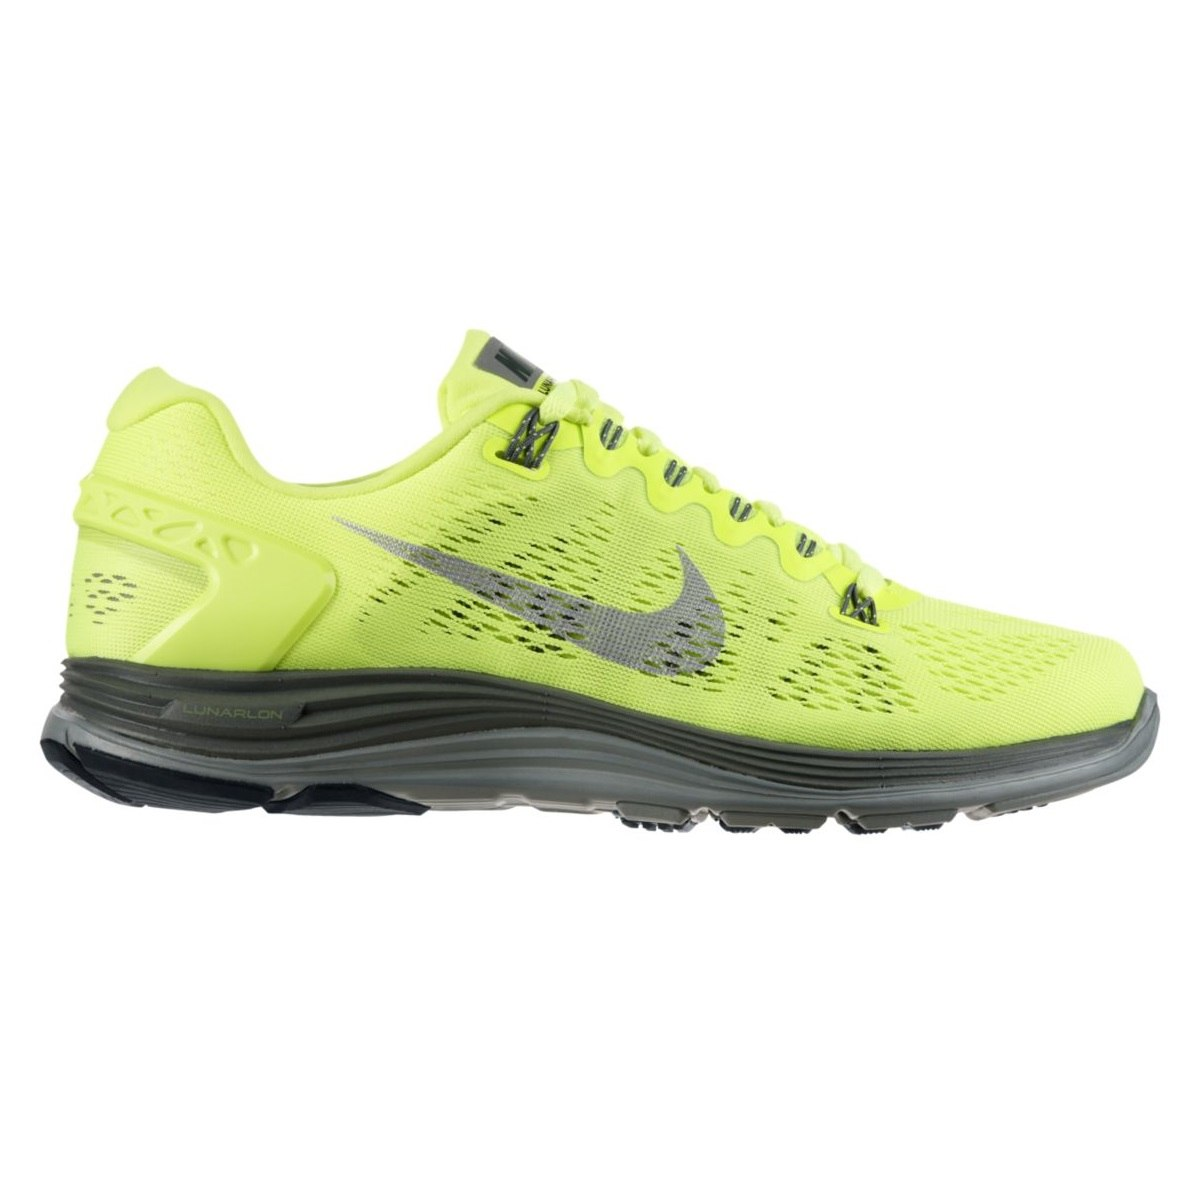 nike lunarglide 5 volt laufschuhe sportschuhe jogging. Black Bedroom Furniture Sets. Home Design Ideas